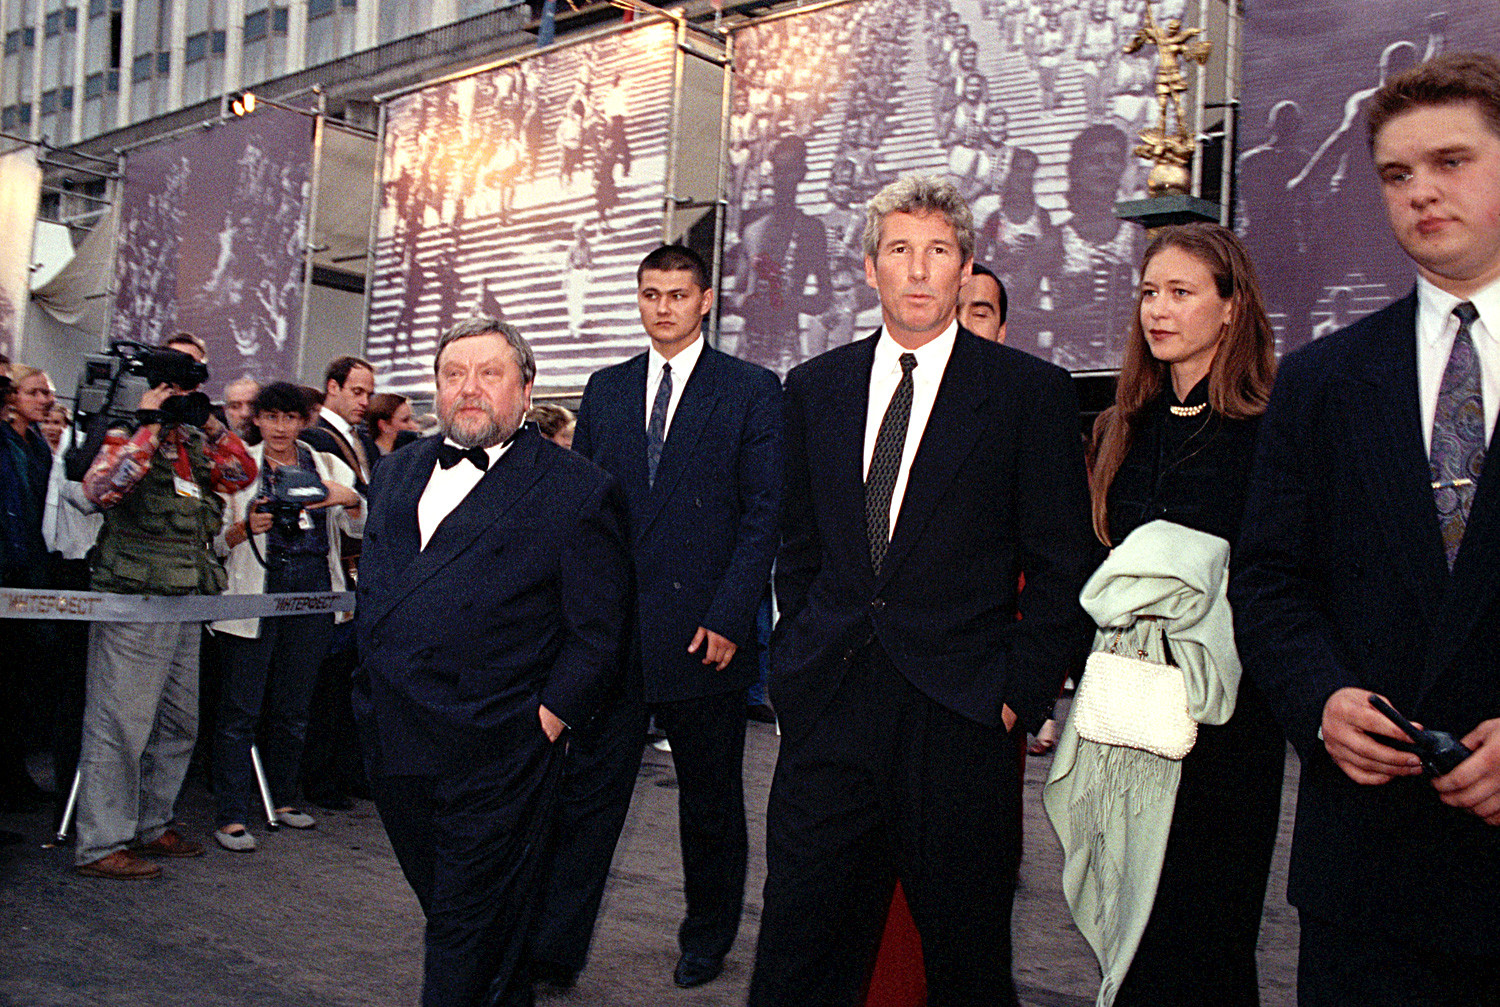 At the 19th Moscow International Film Festival Richard Gere was the jury chairman and his Russian colleague Sergei Solovyev (left) - the forum's president